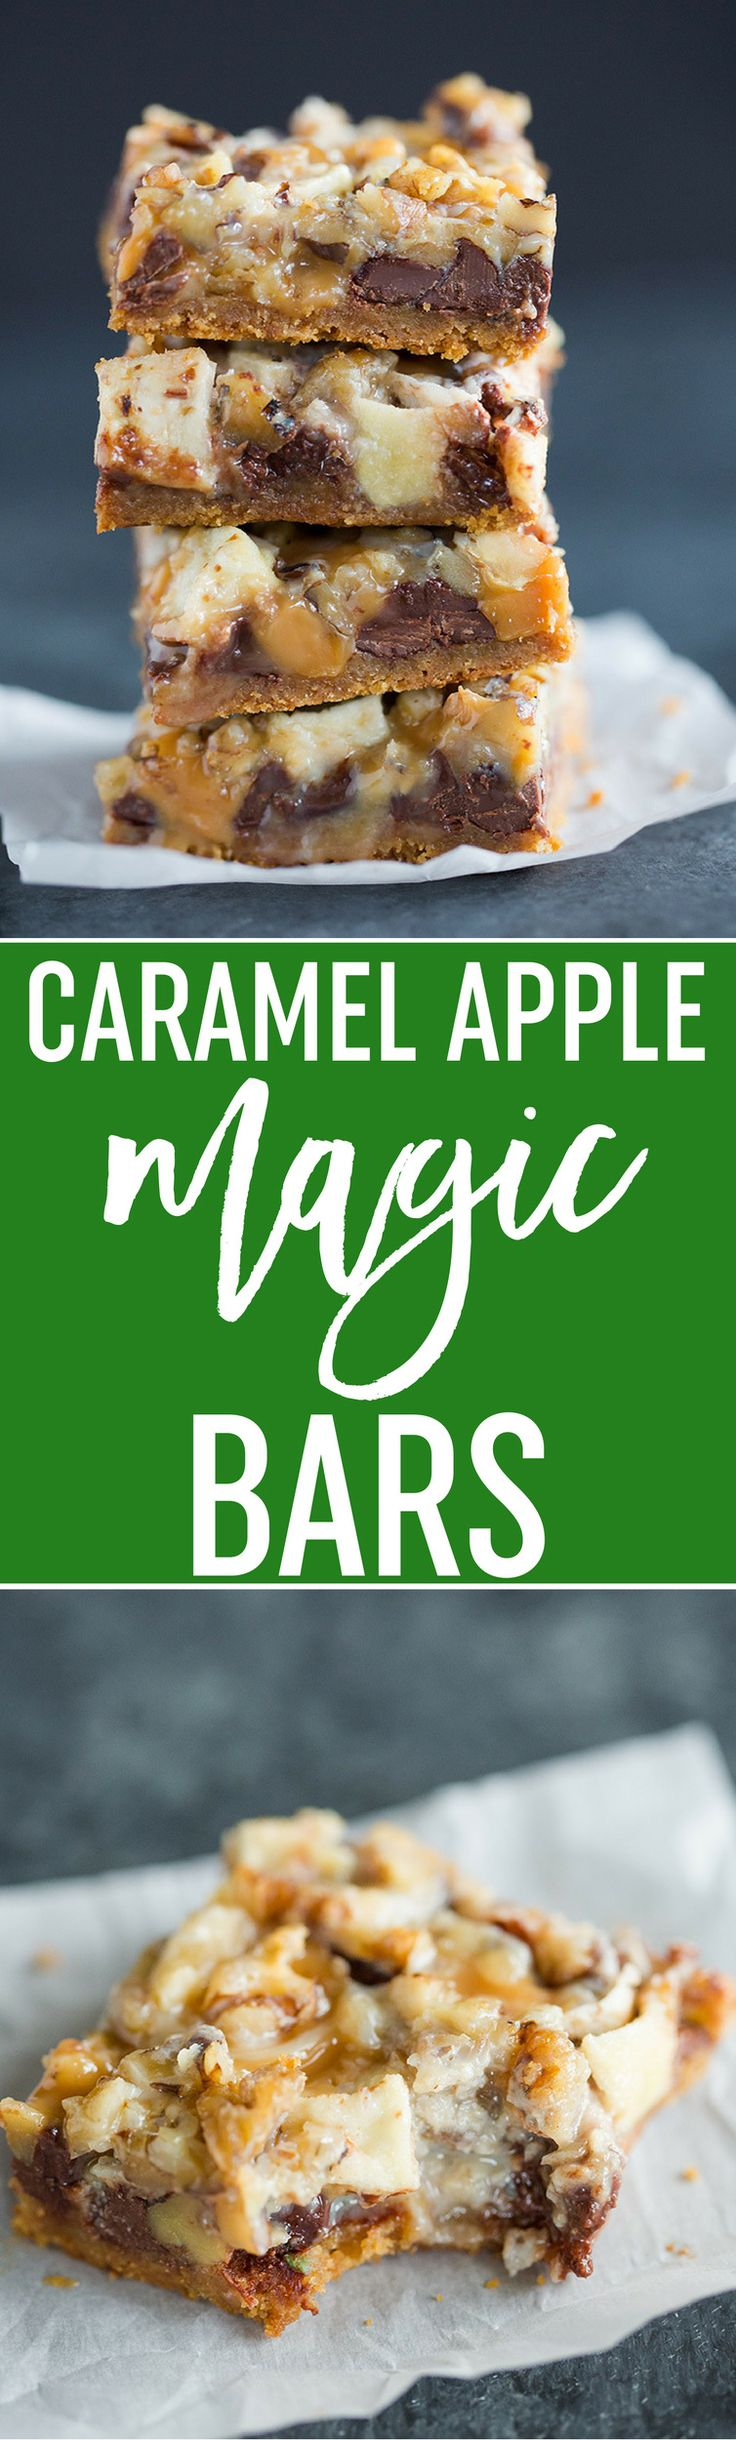 Caramel Apple Magic Bars feature a graham crust, chocolate chips, chopped up caramels, chopped apples, and walnuts. An easy must-make recipe for fall! ~ Brown Eyed Baker